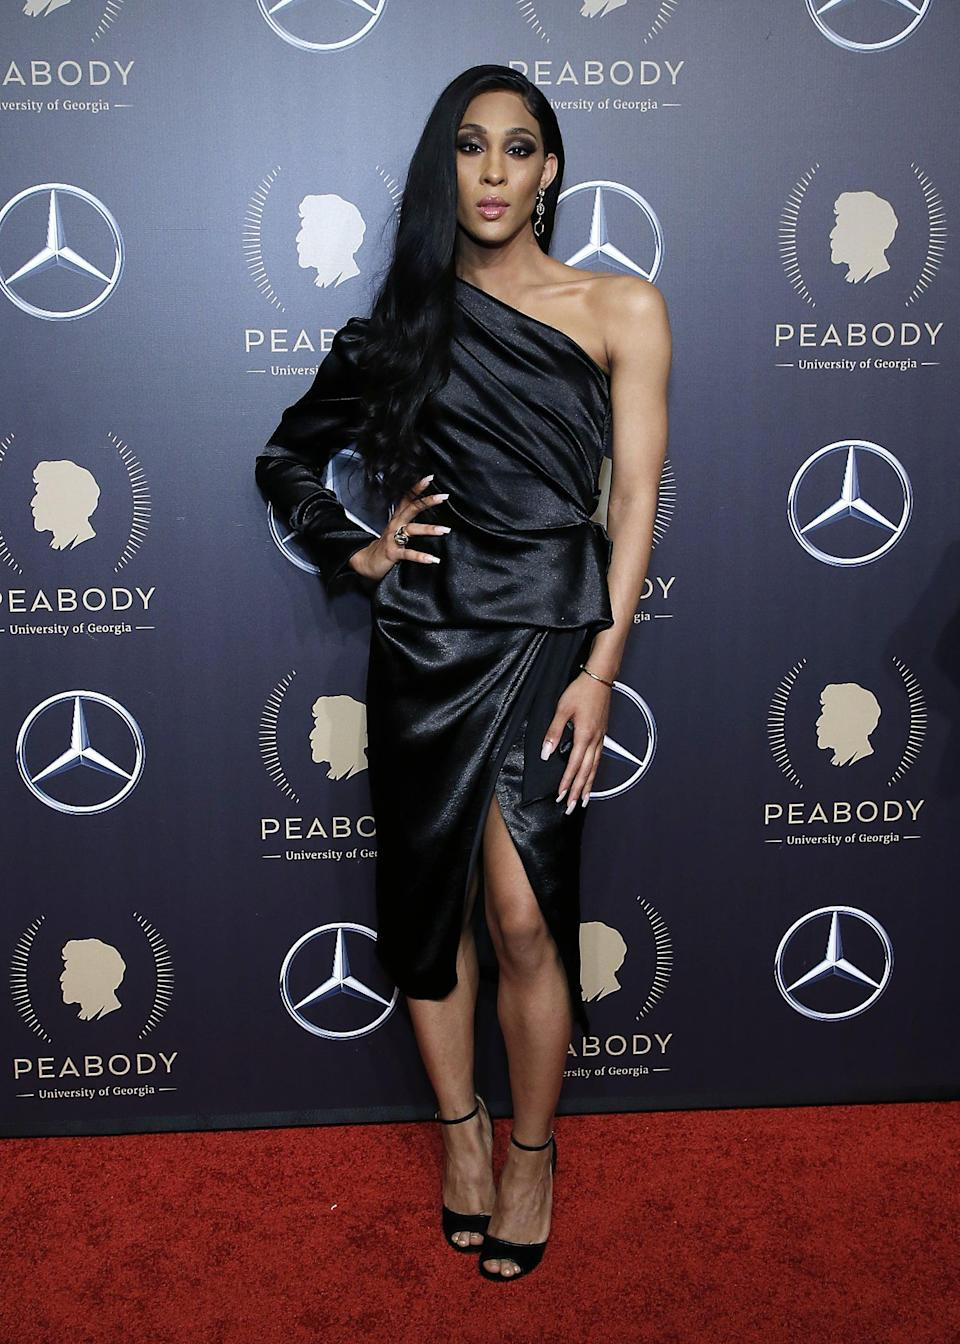 <p>Mj slipped into Givenchy sandals to go with this high-fashion look at the 78th annual Peabody Awards in New York City in 2019.</p>